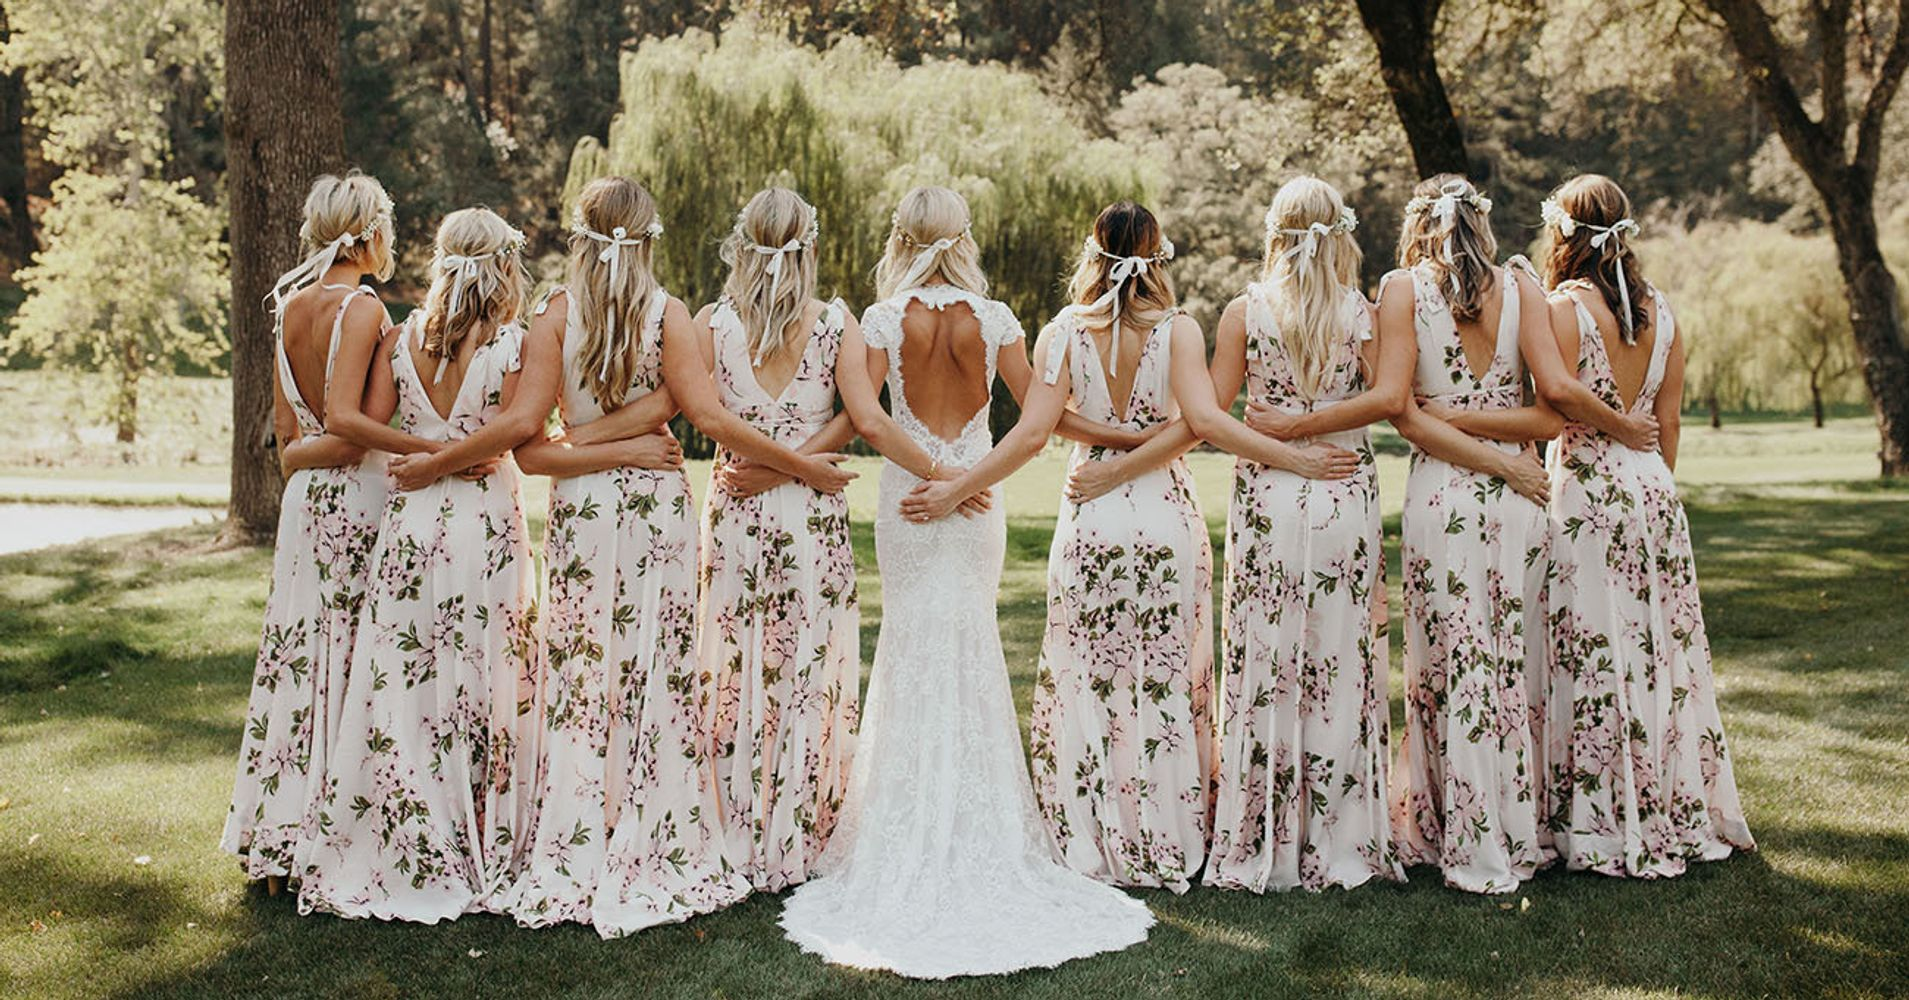 Floral Bridesmaid Dresses Are The Wedding Trend That Will